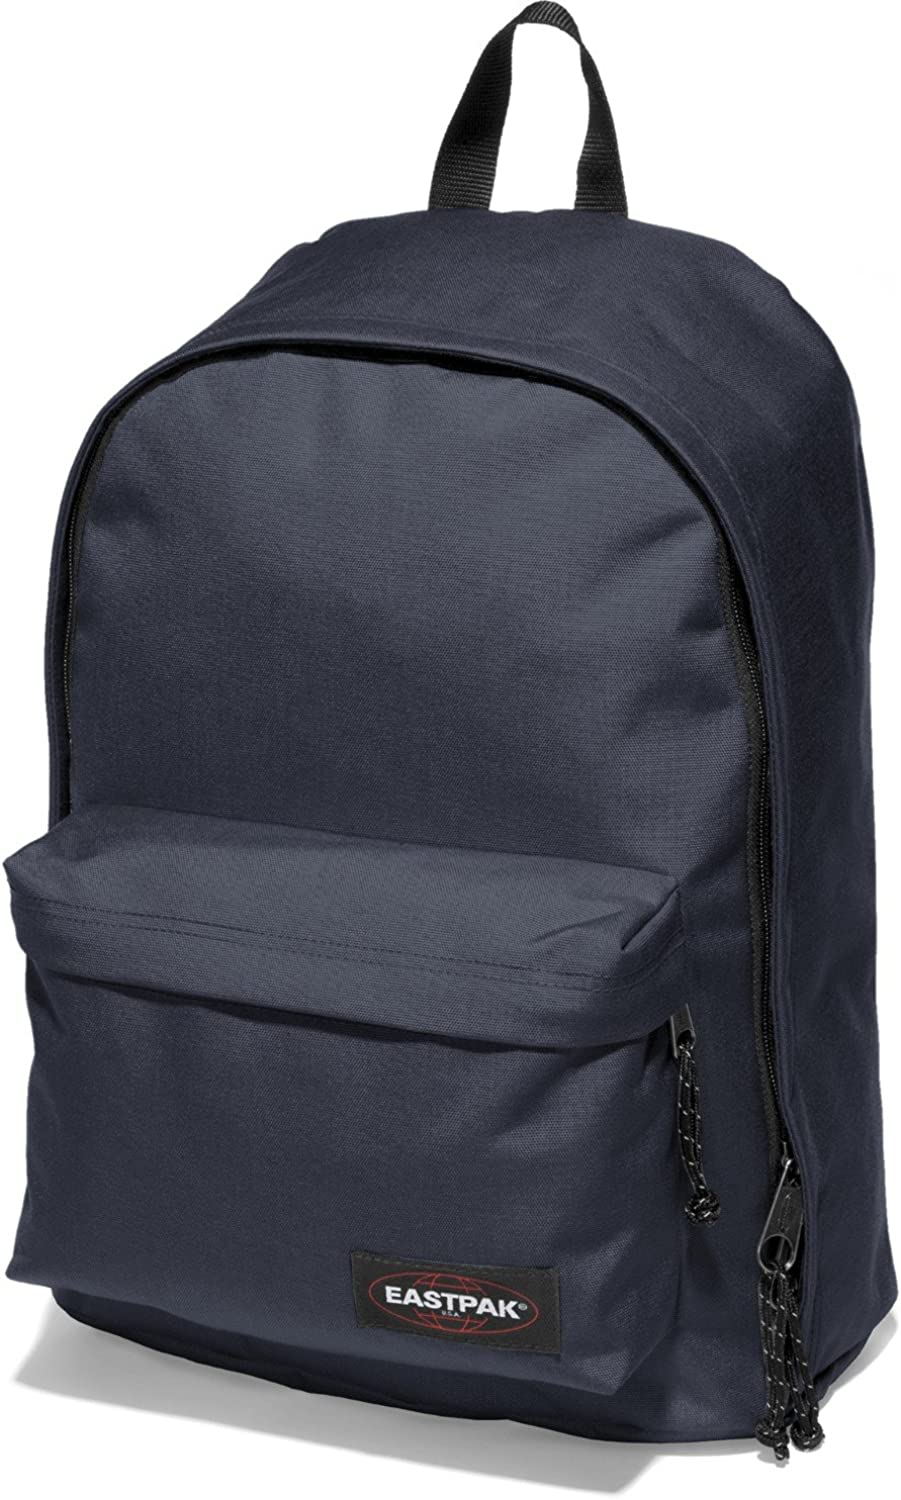 Eastpak Out Of Office Backpack First Interview